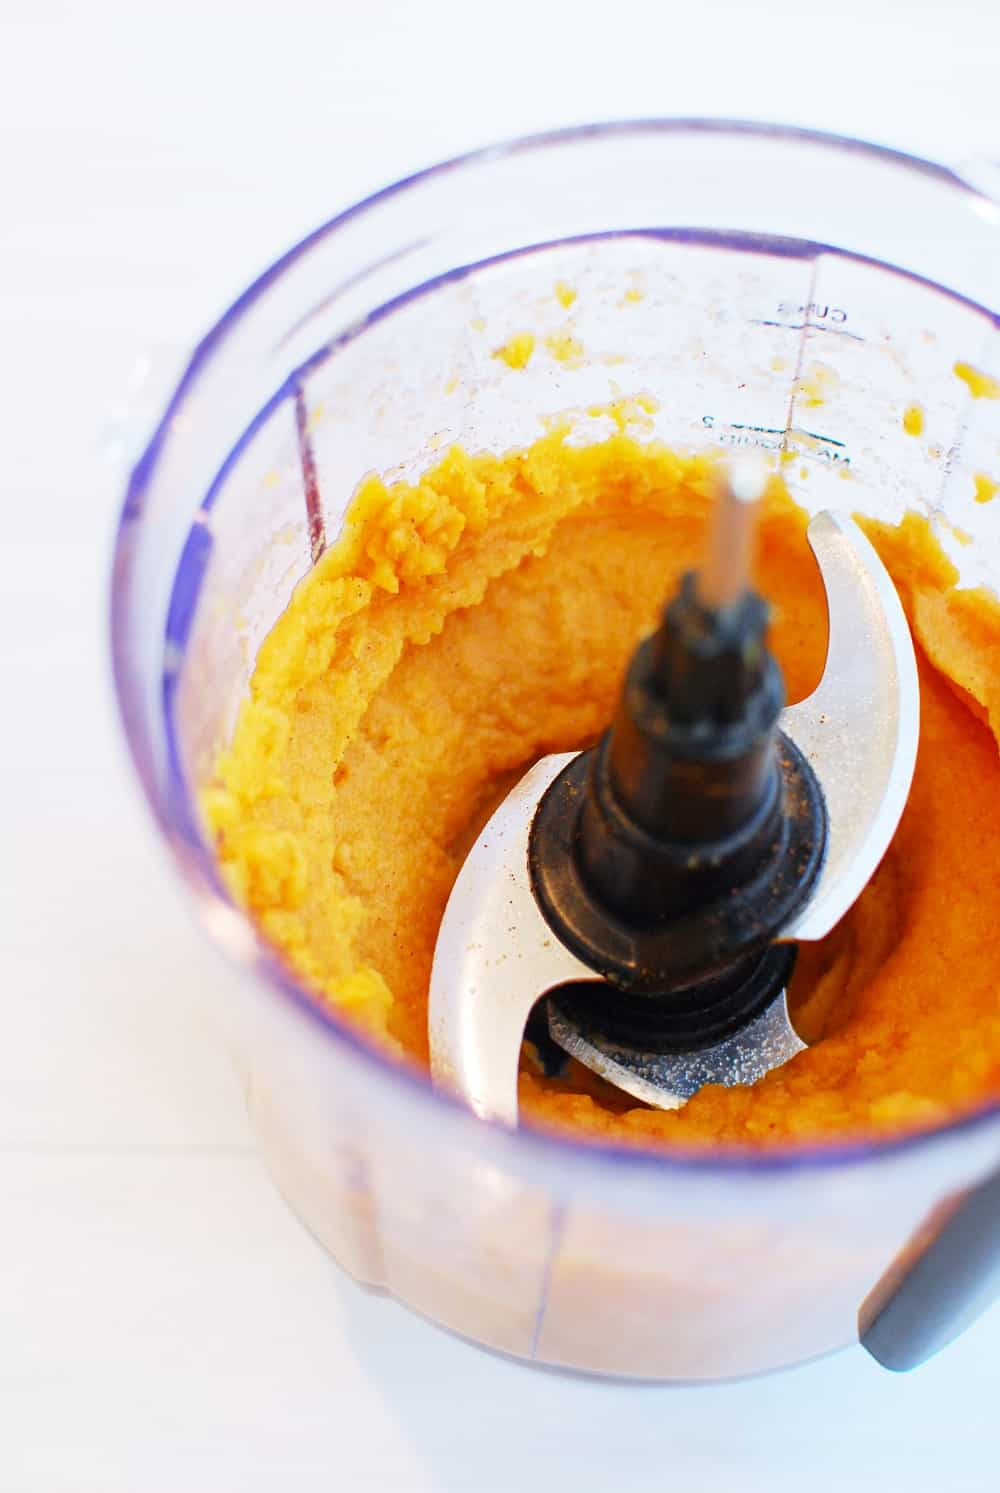 sweet potato in a food processor with cinnamon and almond milk